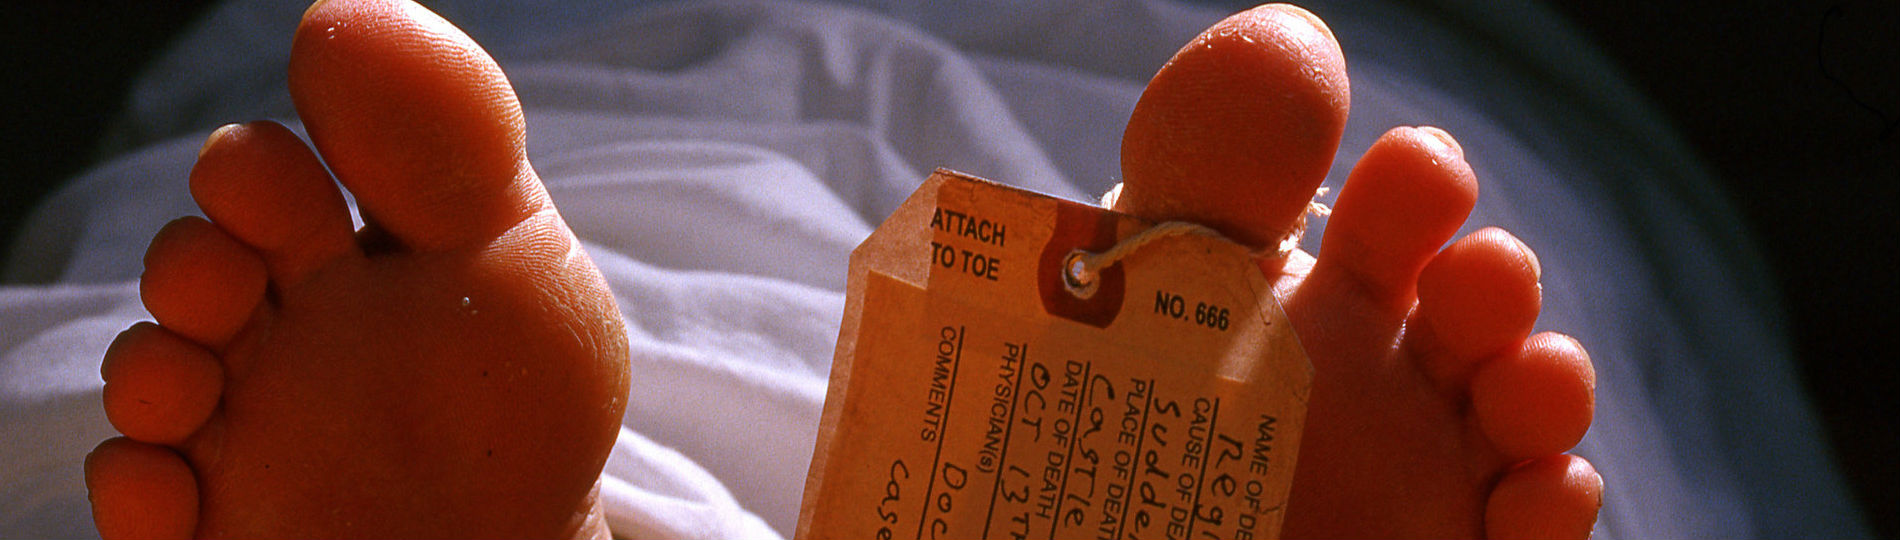 A toe tag is attached to a deceased person's foot.